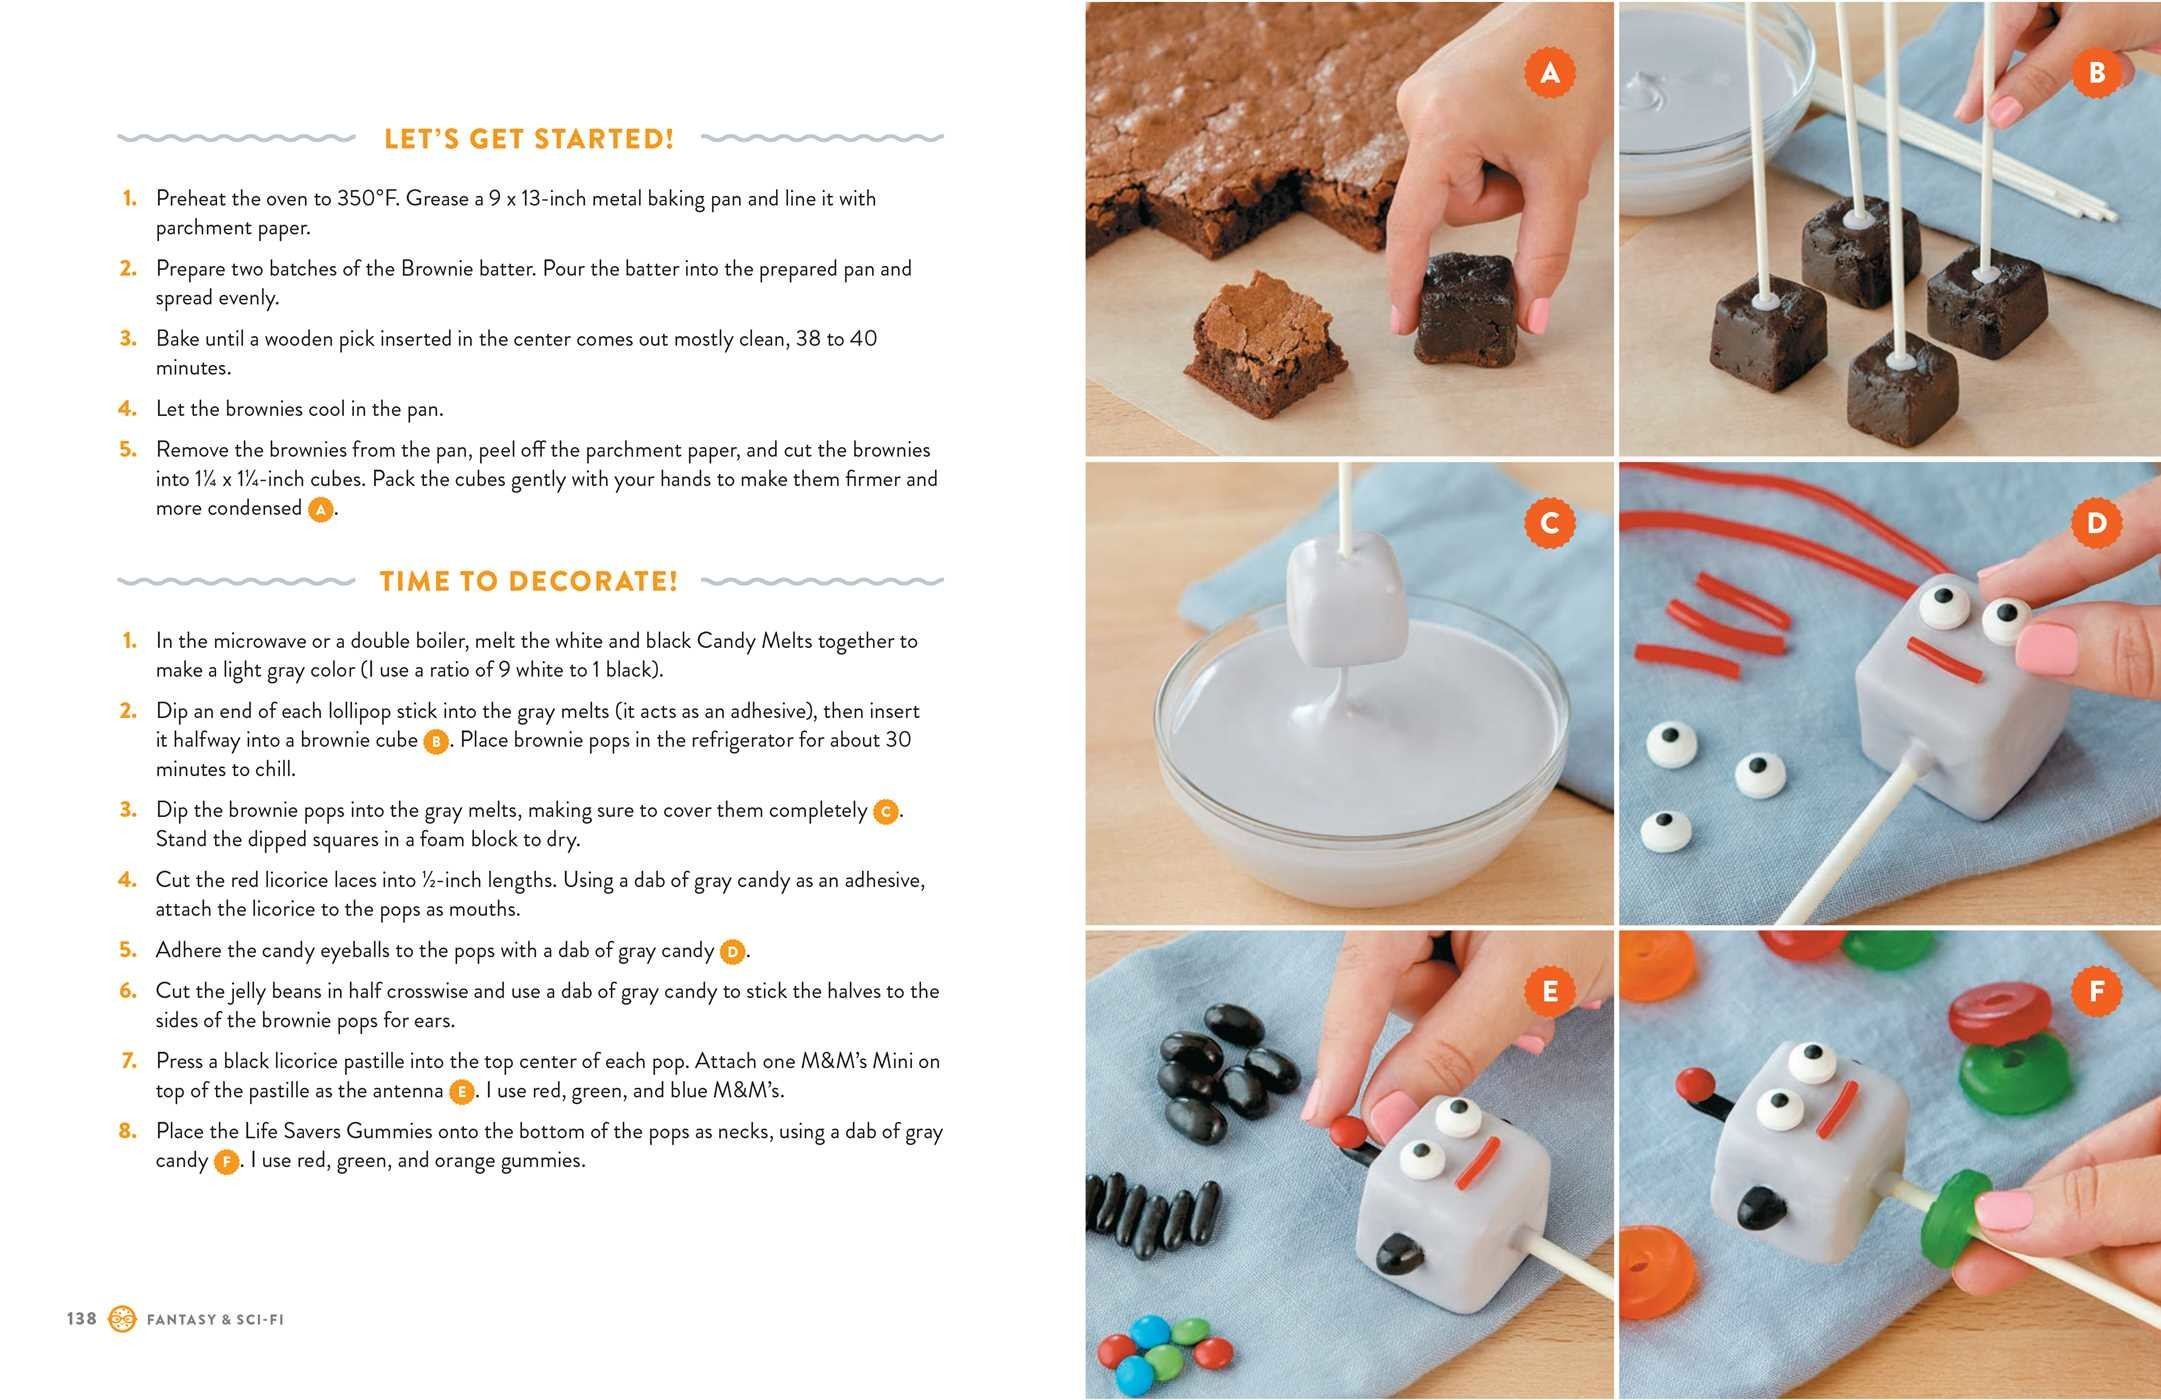 The nerdy nummies cookbook 9781501104015.in06